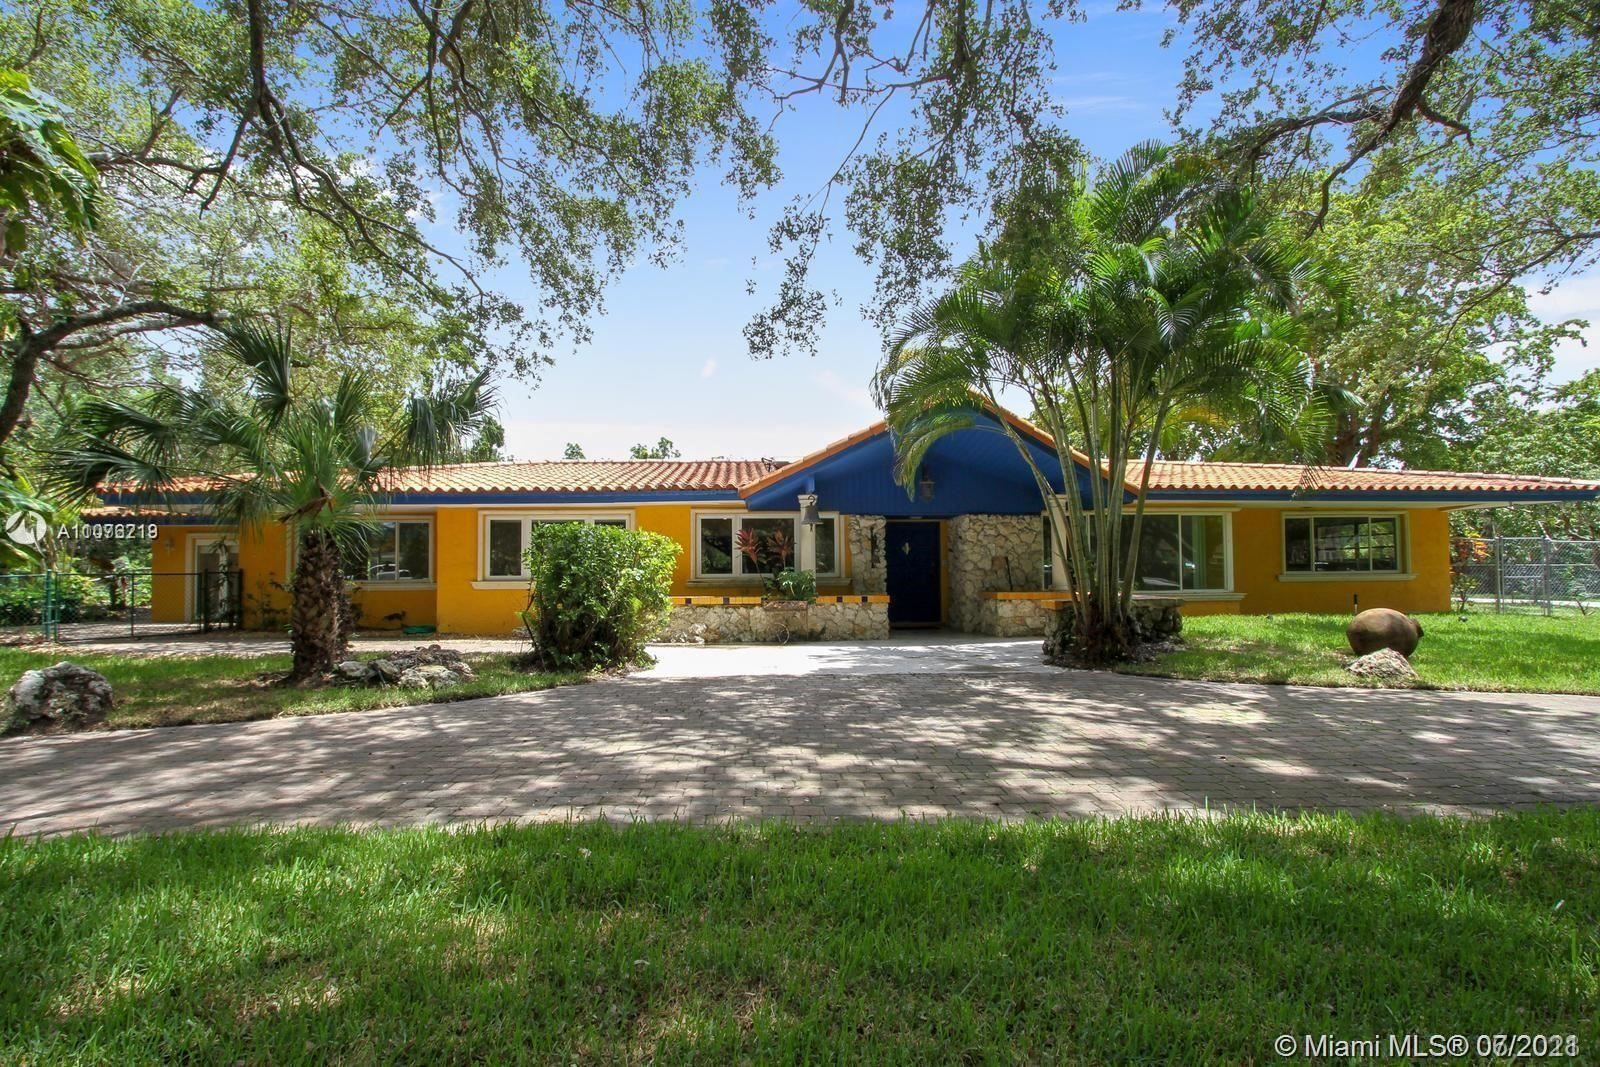 Photo of 7355 SW 104th St, Pinecrest, FL 33156 (MLS # A11076219)